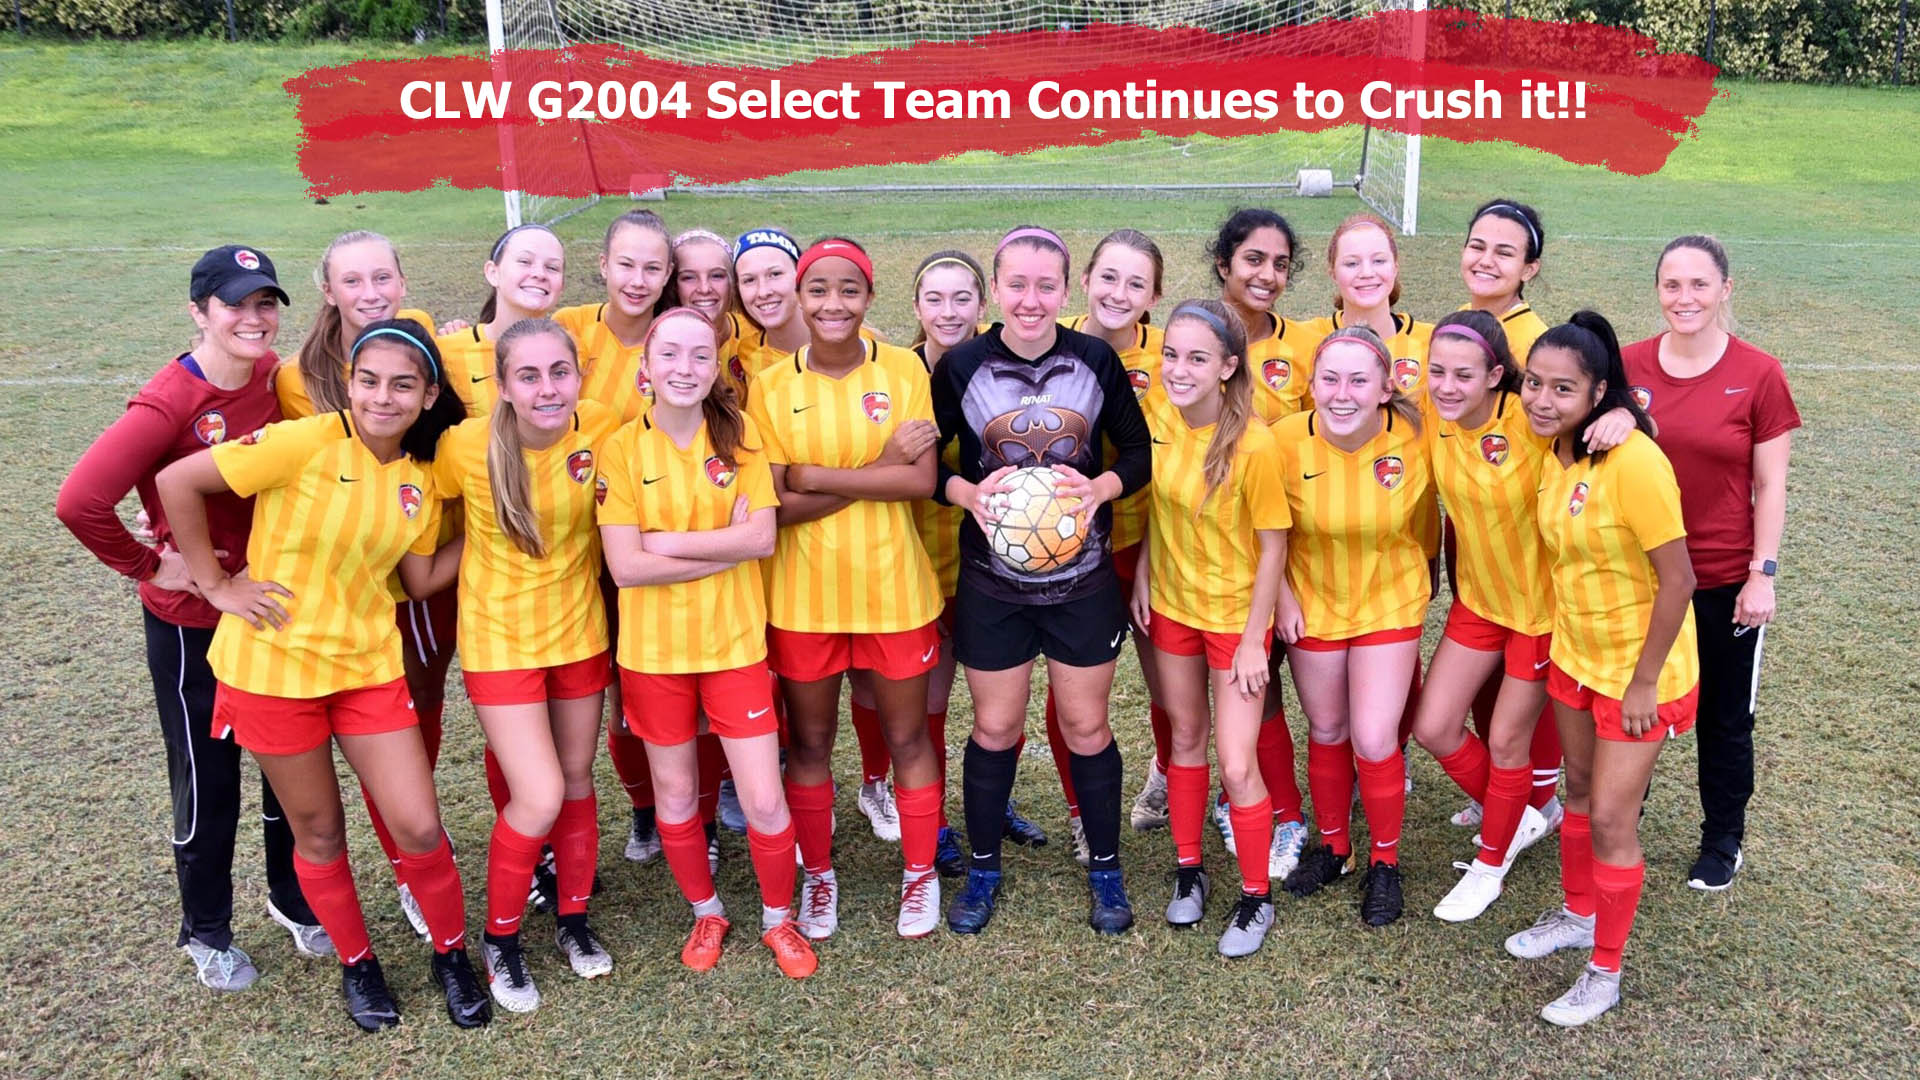 CLW G2004 Continue To Crush It!